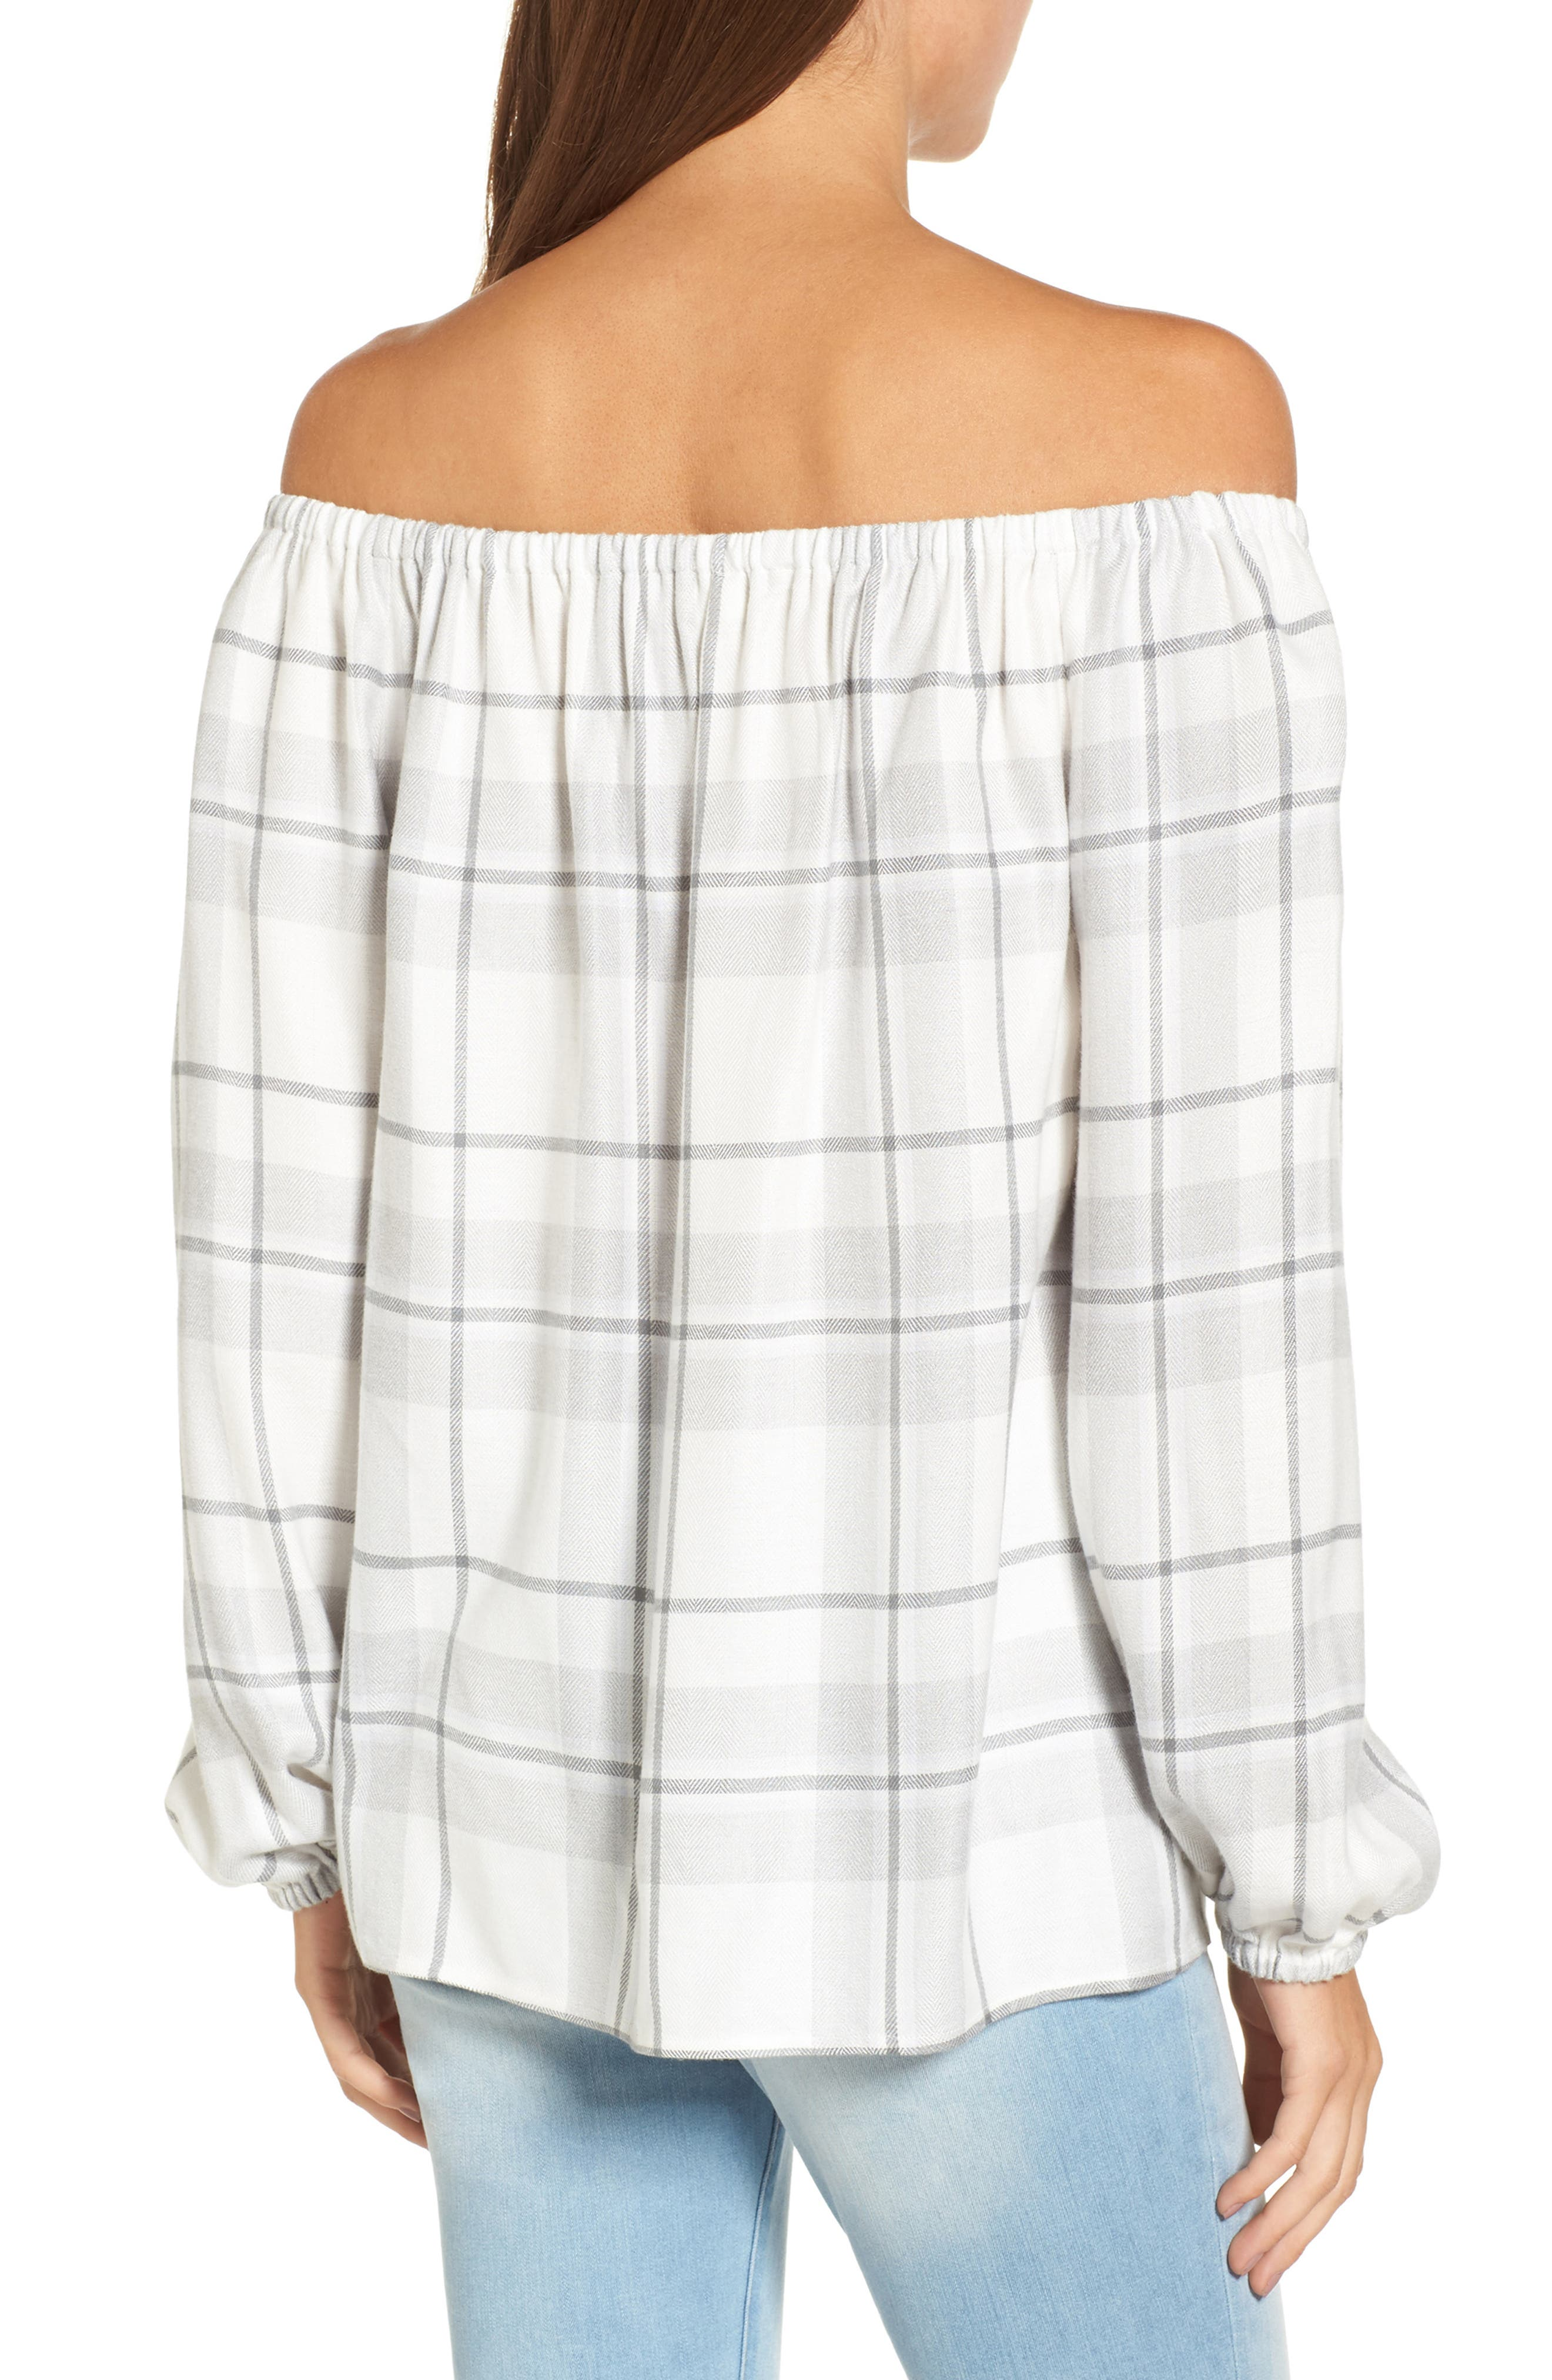 Alternate Image 2  - Two by Vince Camuto Off the Shoulder Plaid Blouse (Regular & Petite)